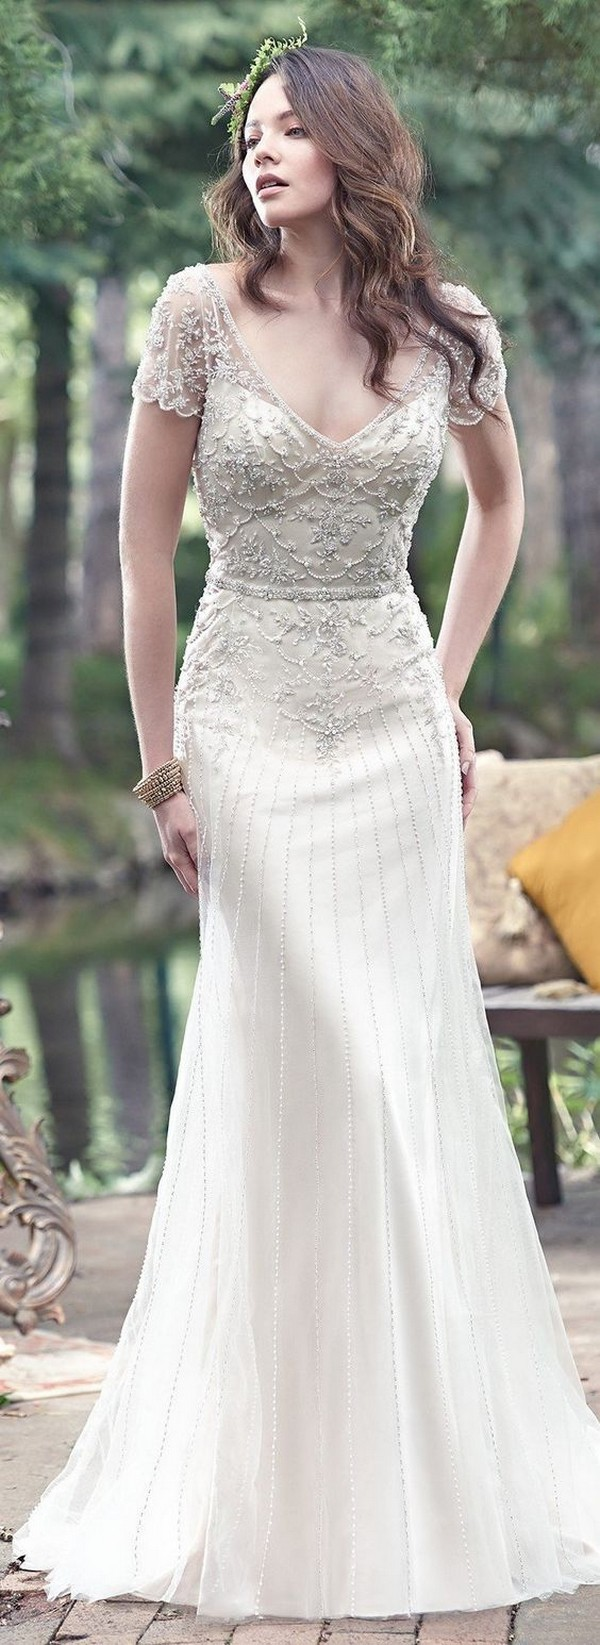 Maggie Sottero beaded vintage wedding dress